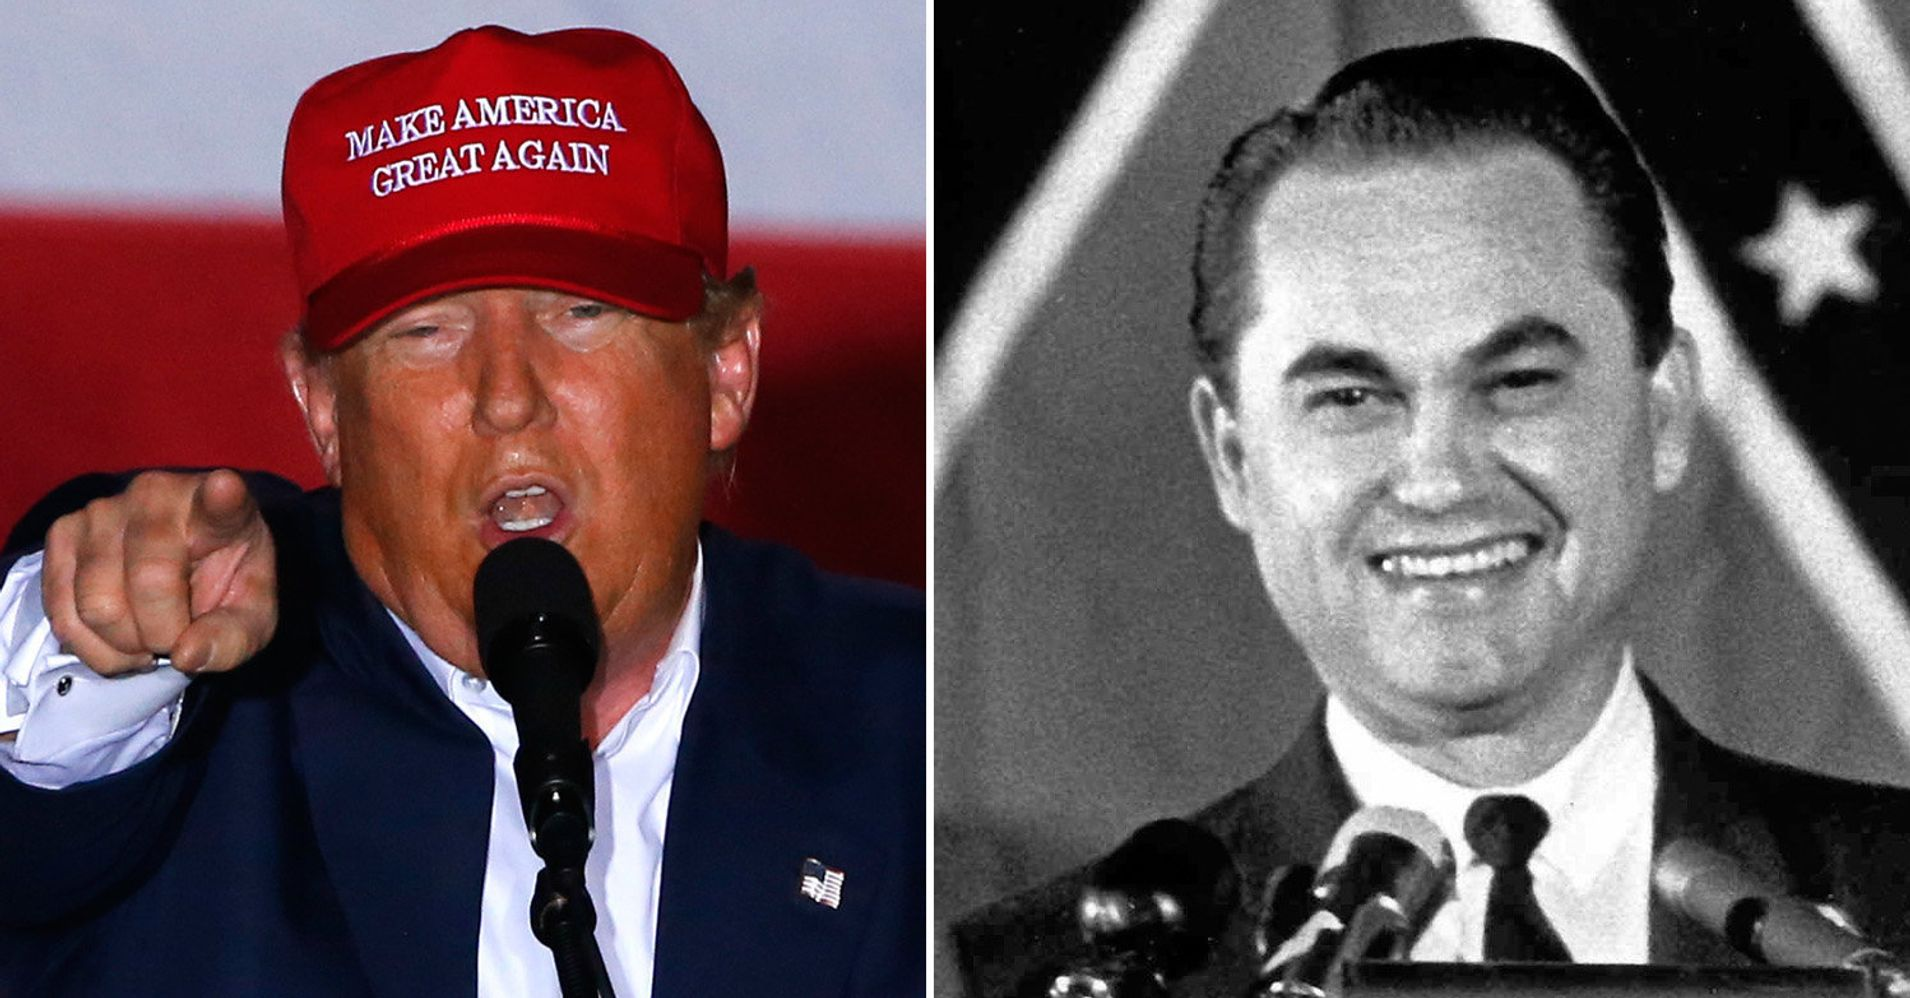 Who Said It: Renowned Racist George Wallace Or Donald